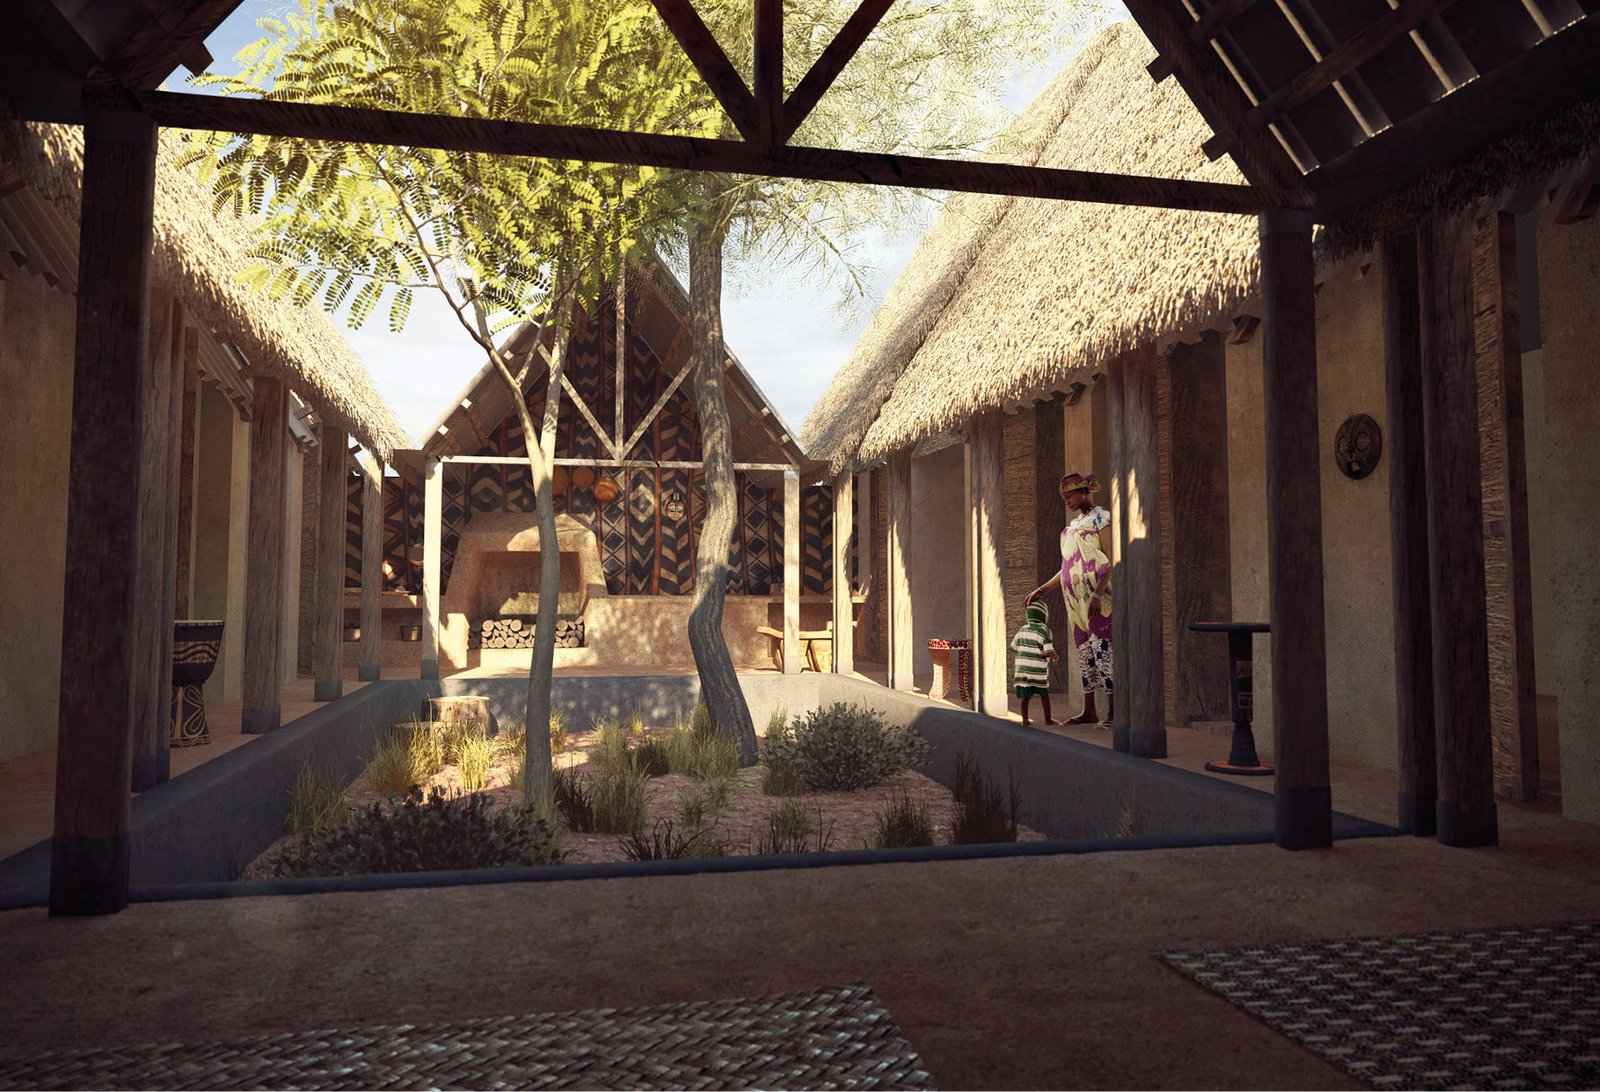 Sankofa House by M.A.M.O.T.H.  Vauzelle and his teammates wanted to use local, traditional materials in contemporary ways that could easily be adapted, allowing for personalization, like the courtyard above.  Modern Mud Homes: A New Take on Building in Ghana by Patrick Sisson